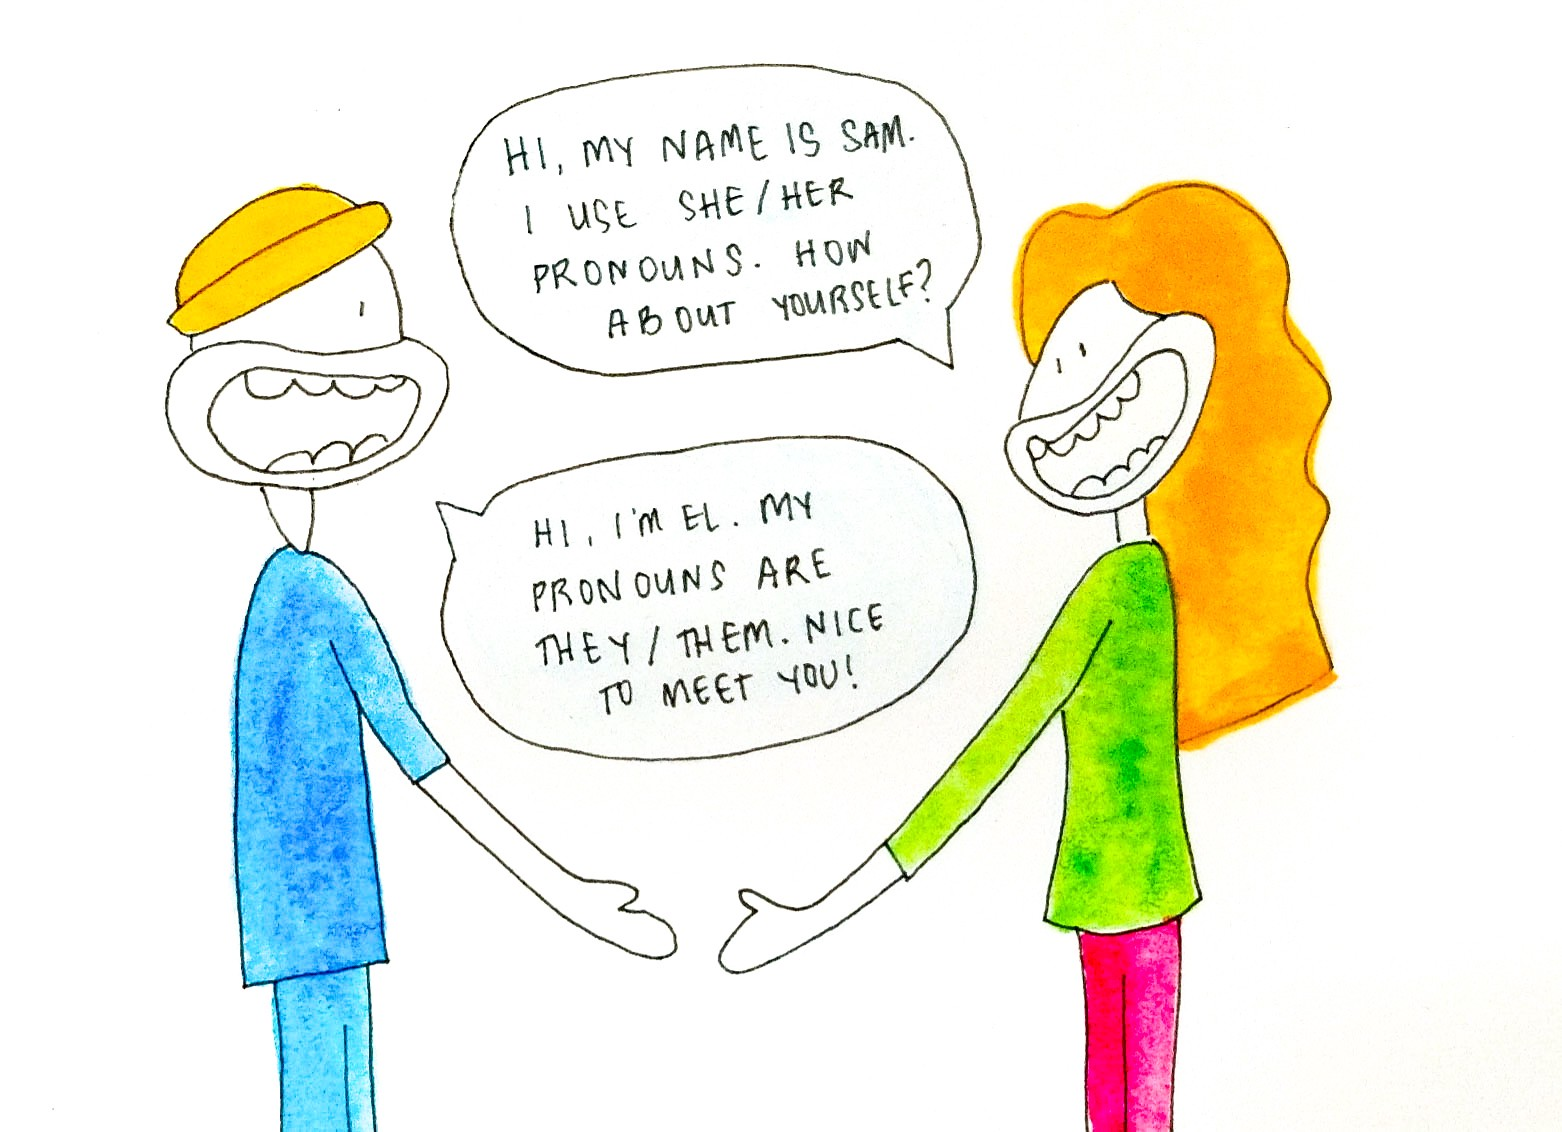 Drawing of two people meeting